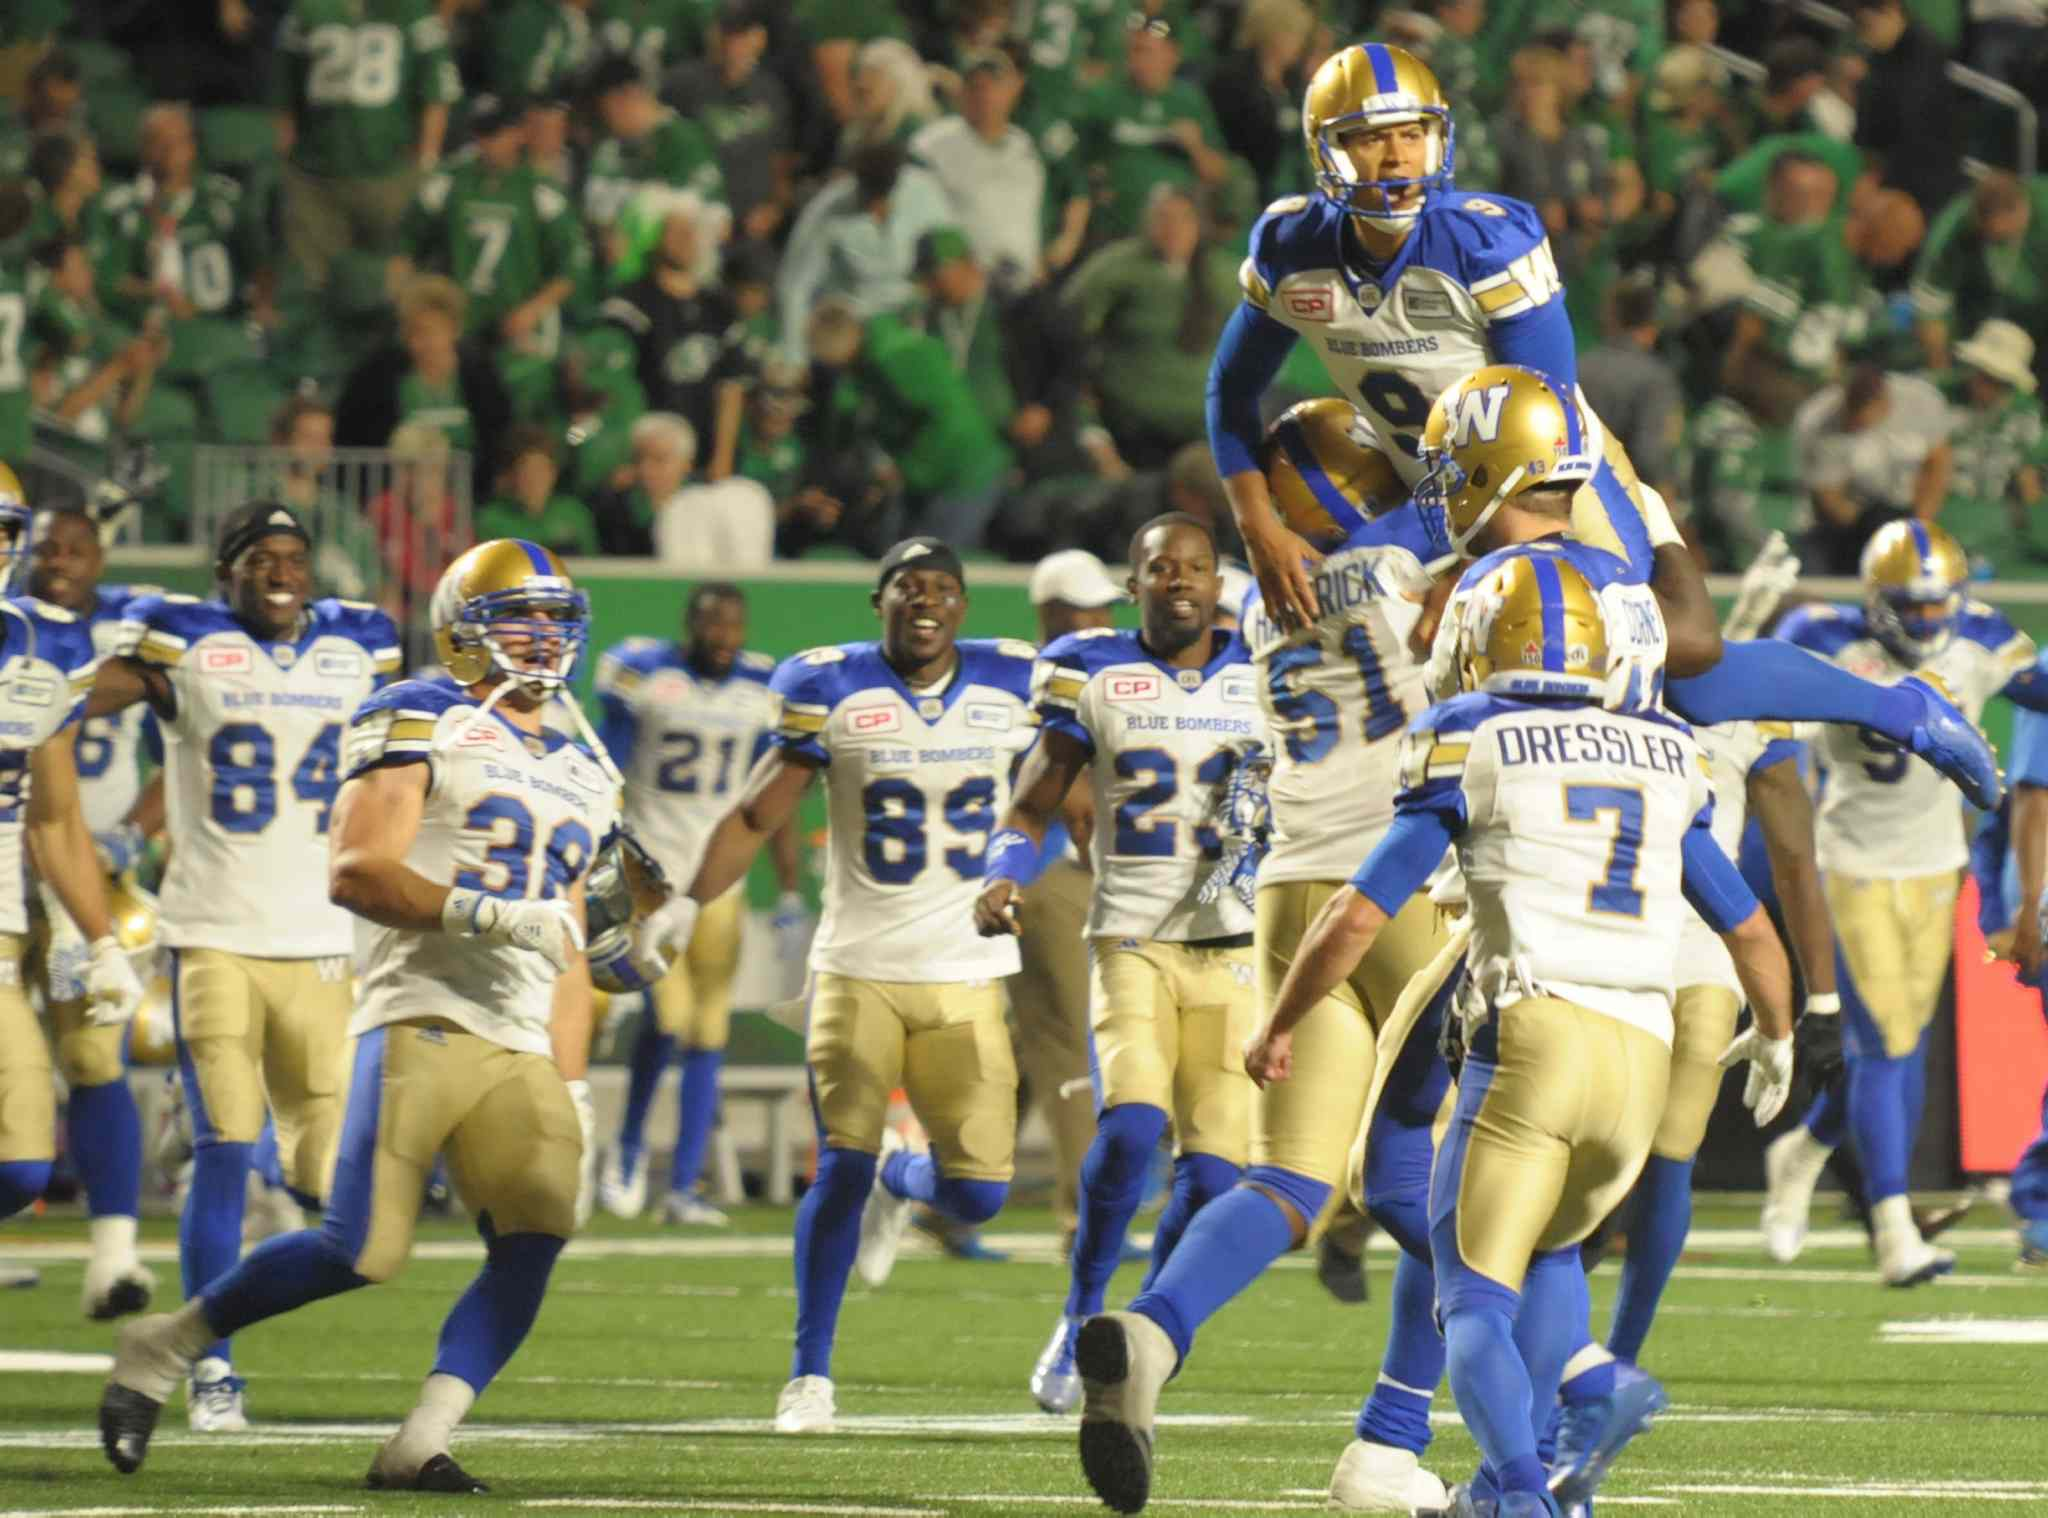 Winnipeg Blue Bombers kicker Justin Medlock celebrates his overtime winner to spoil the Saskatchewan Roughriders' home opener during CFL action at the brand new Mosaic Stadium, in Regina on Saturday, July 1, 2017.